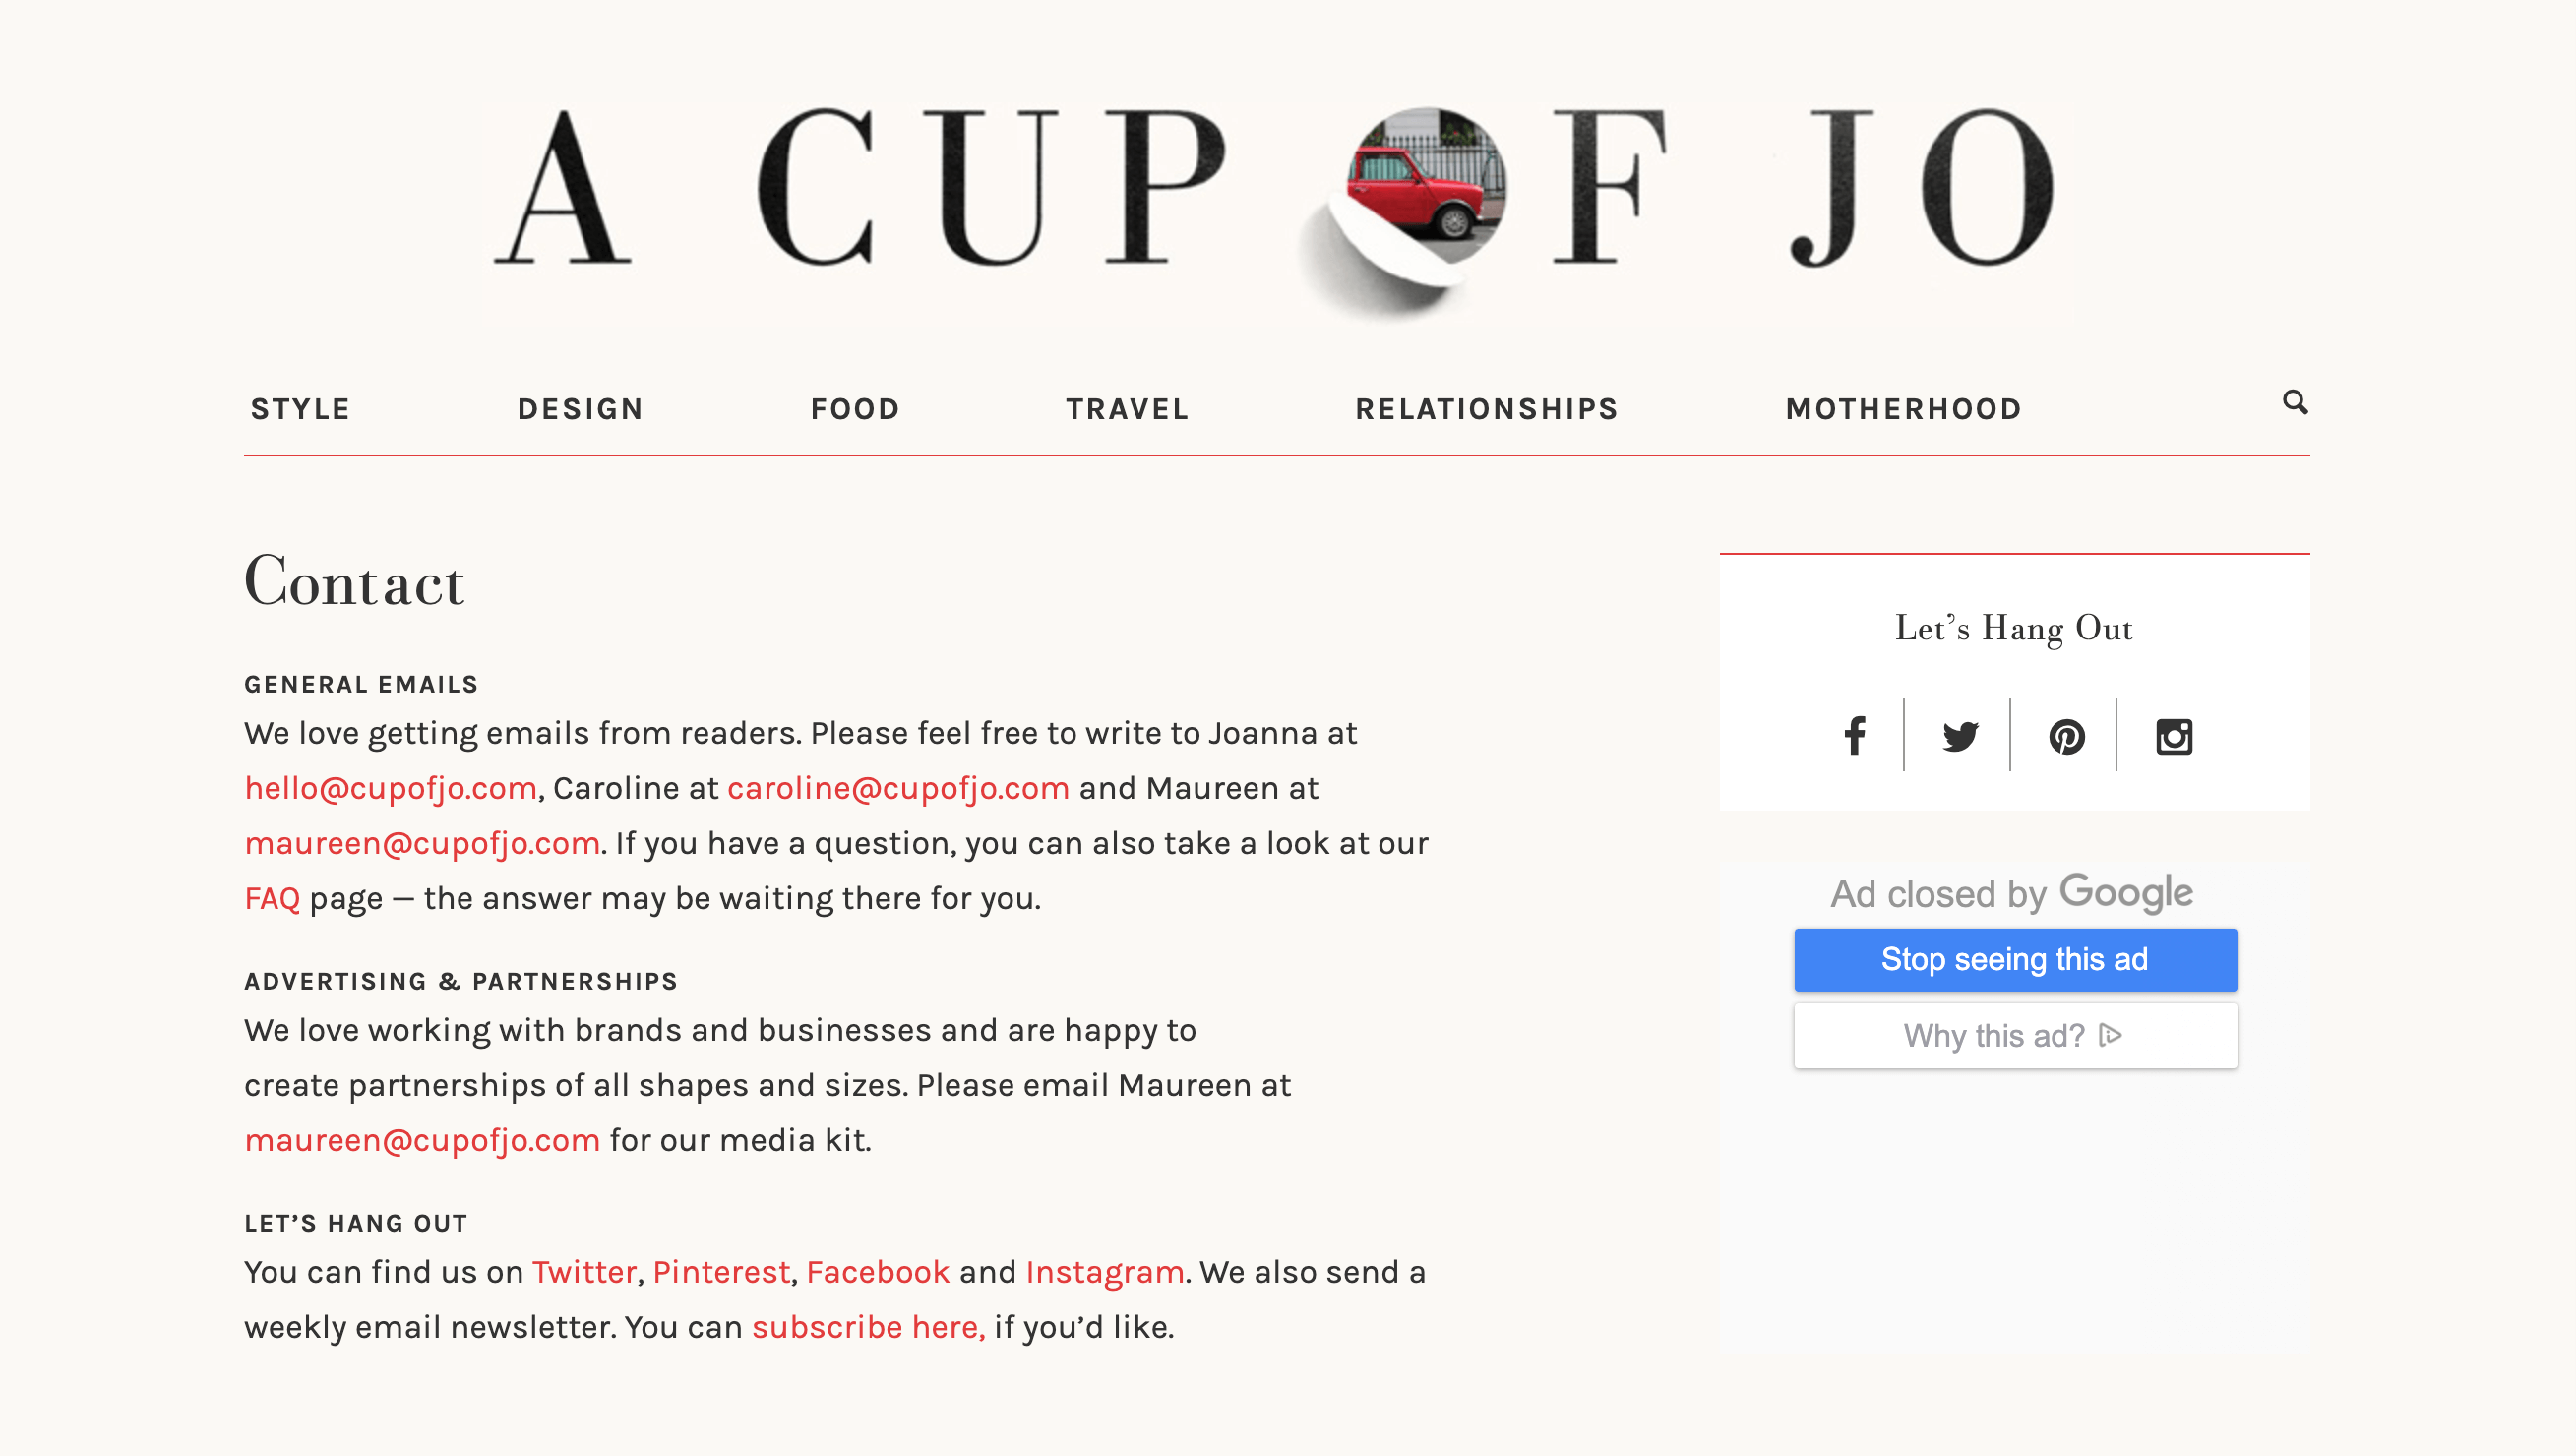 The Cup of Jo blog contact section for advertising and partnerships.